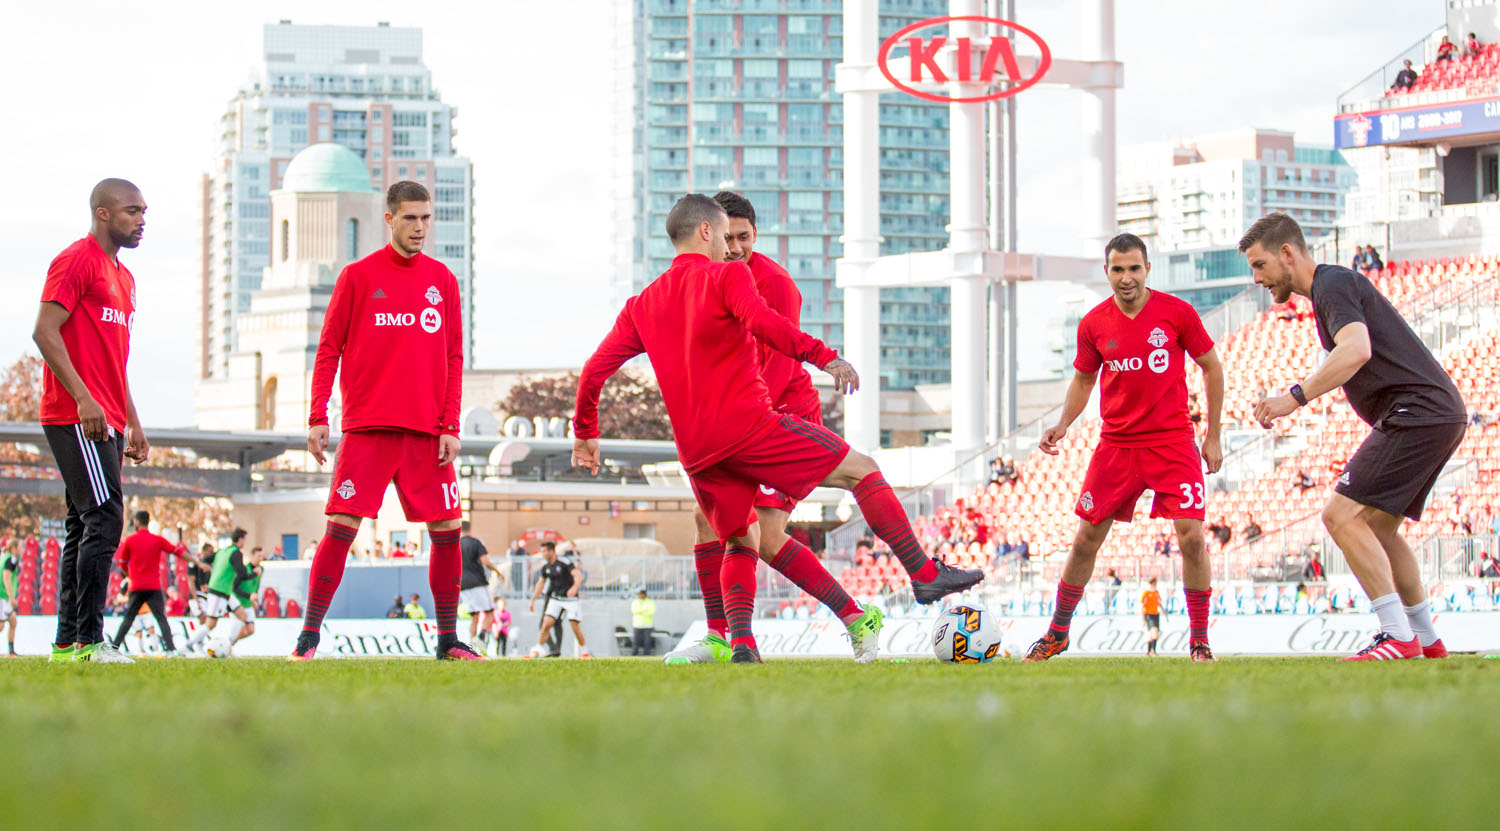 Toronto FC warms up before a Canadian Championship match in 2017 against the Ottawa Fury.Image by Dennis Marciniak of denMAR Media.